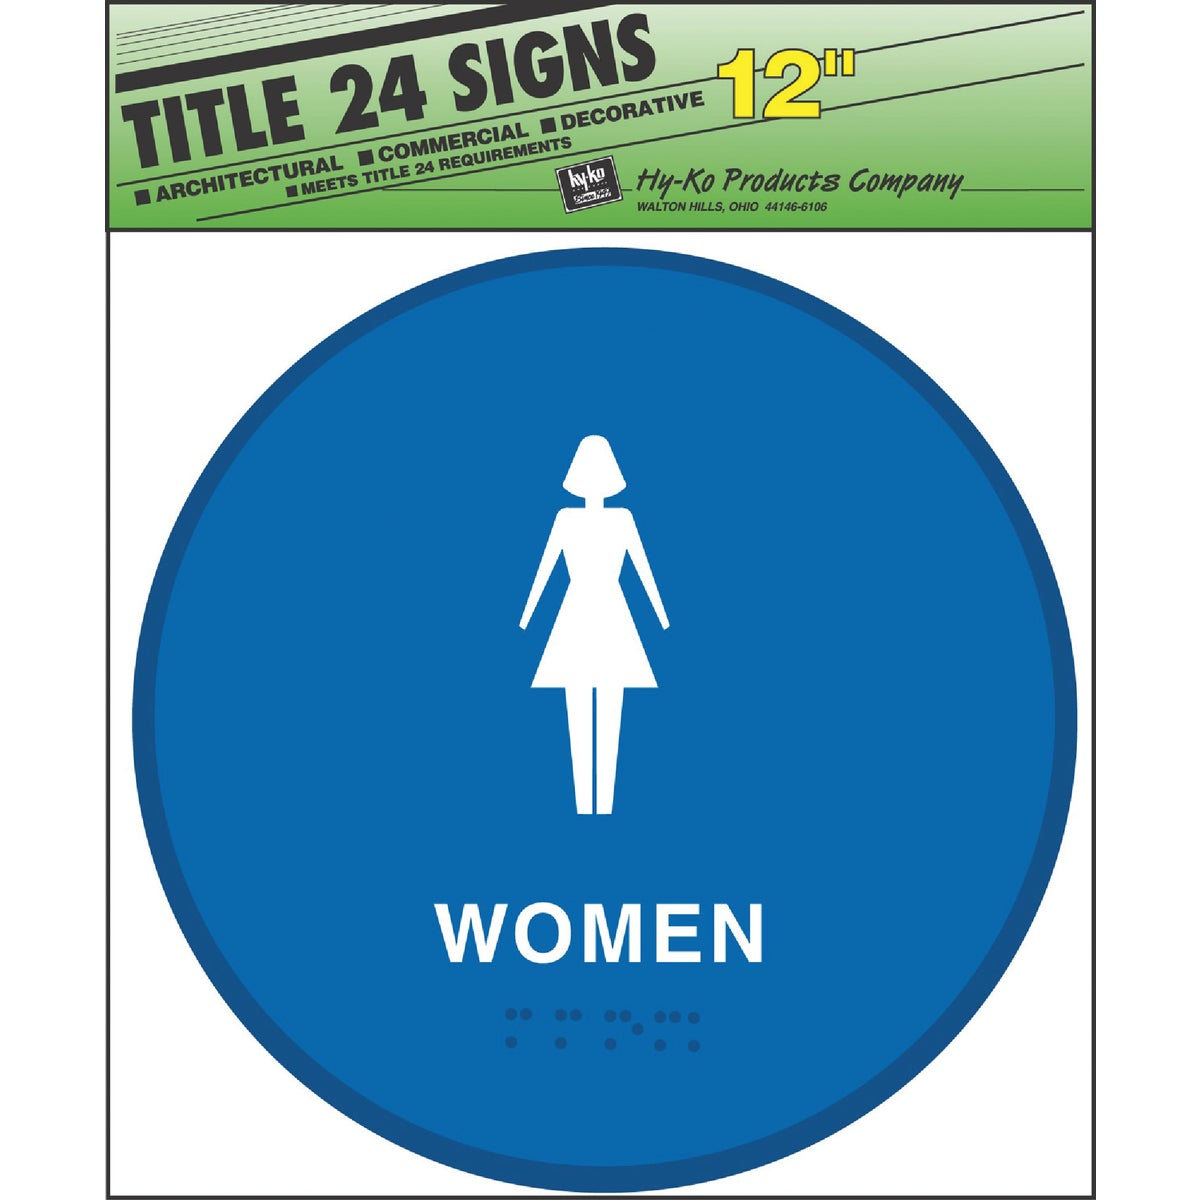 WOMEN BLUE ROUND SIGN - T-24W by Hy Ko Prods Co